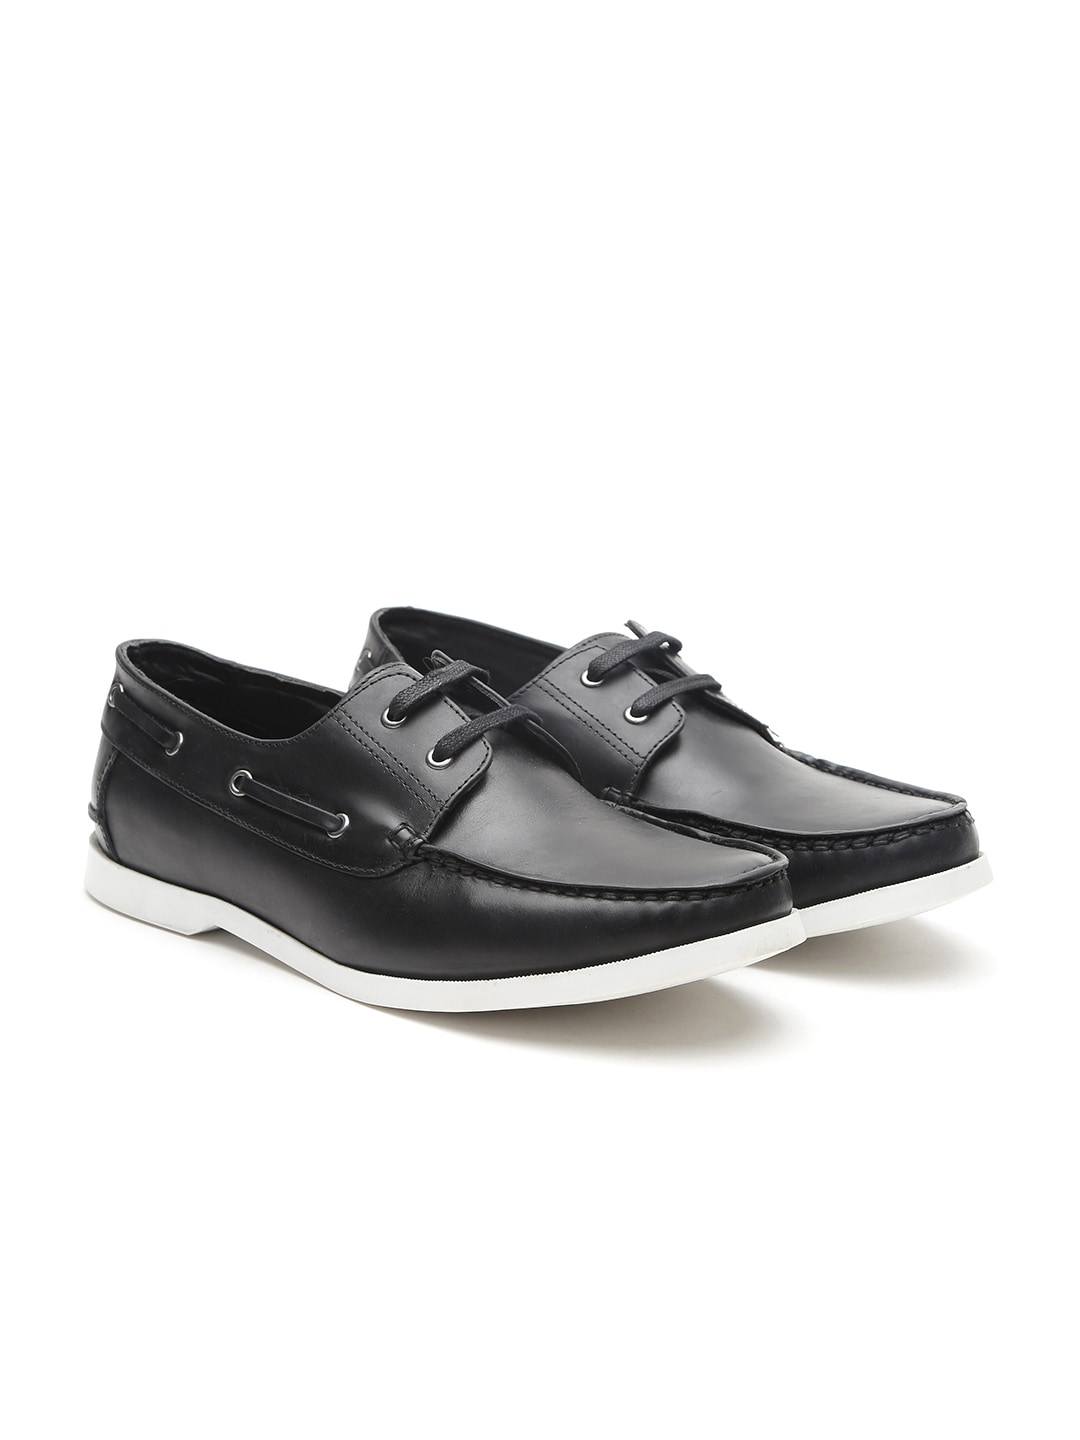 18d00375722   Casual Shoes Flats - Buy   Casual Shoes Flats online in India